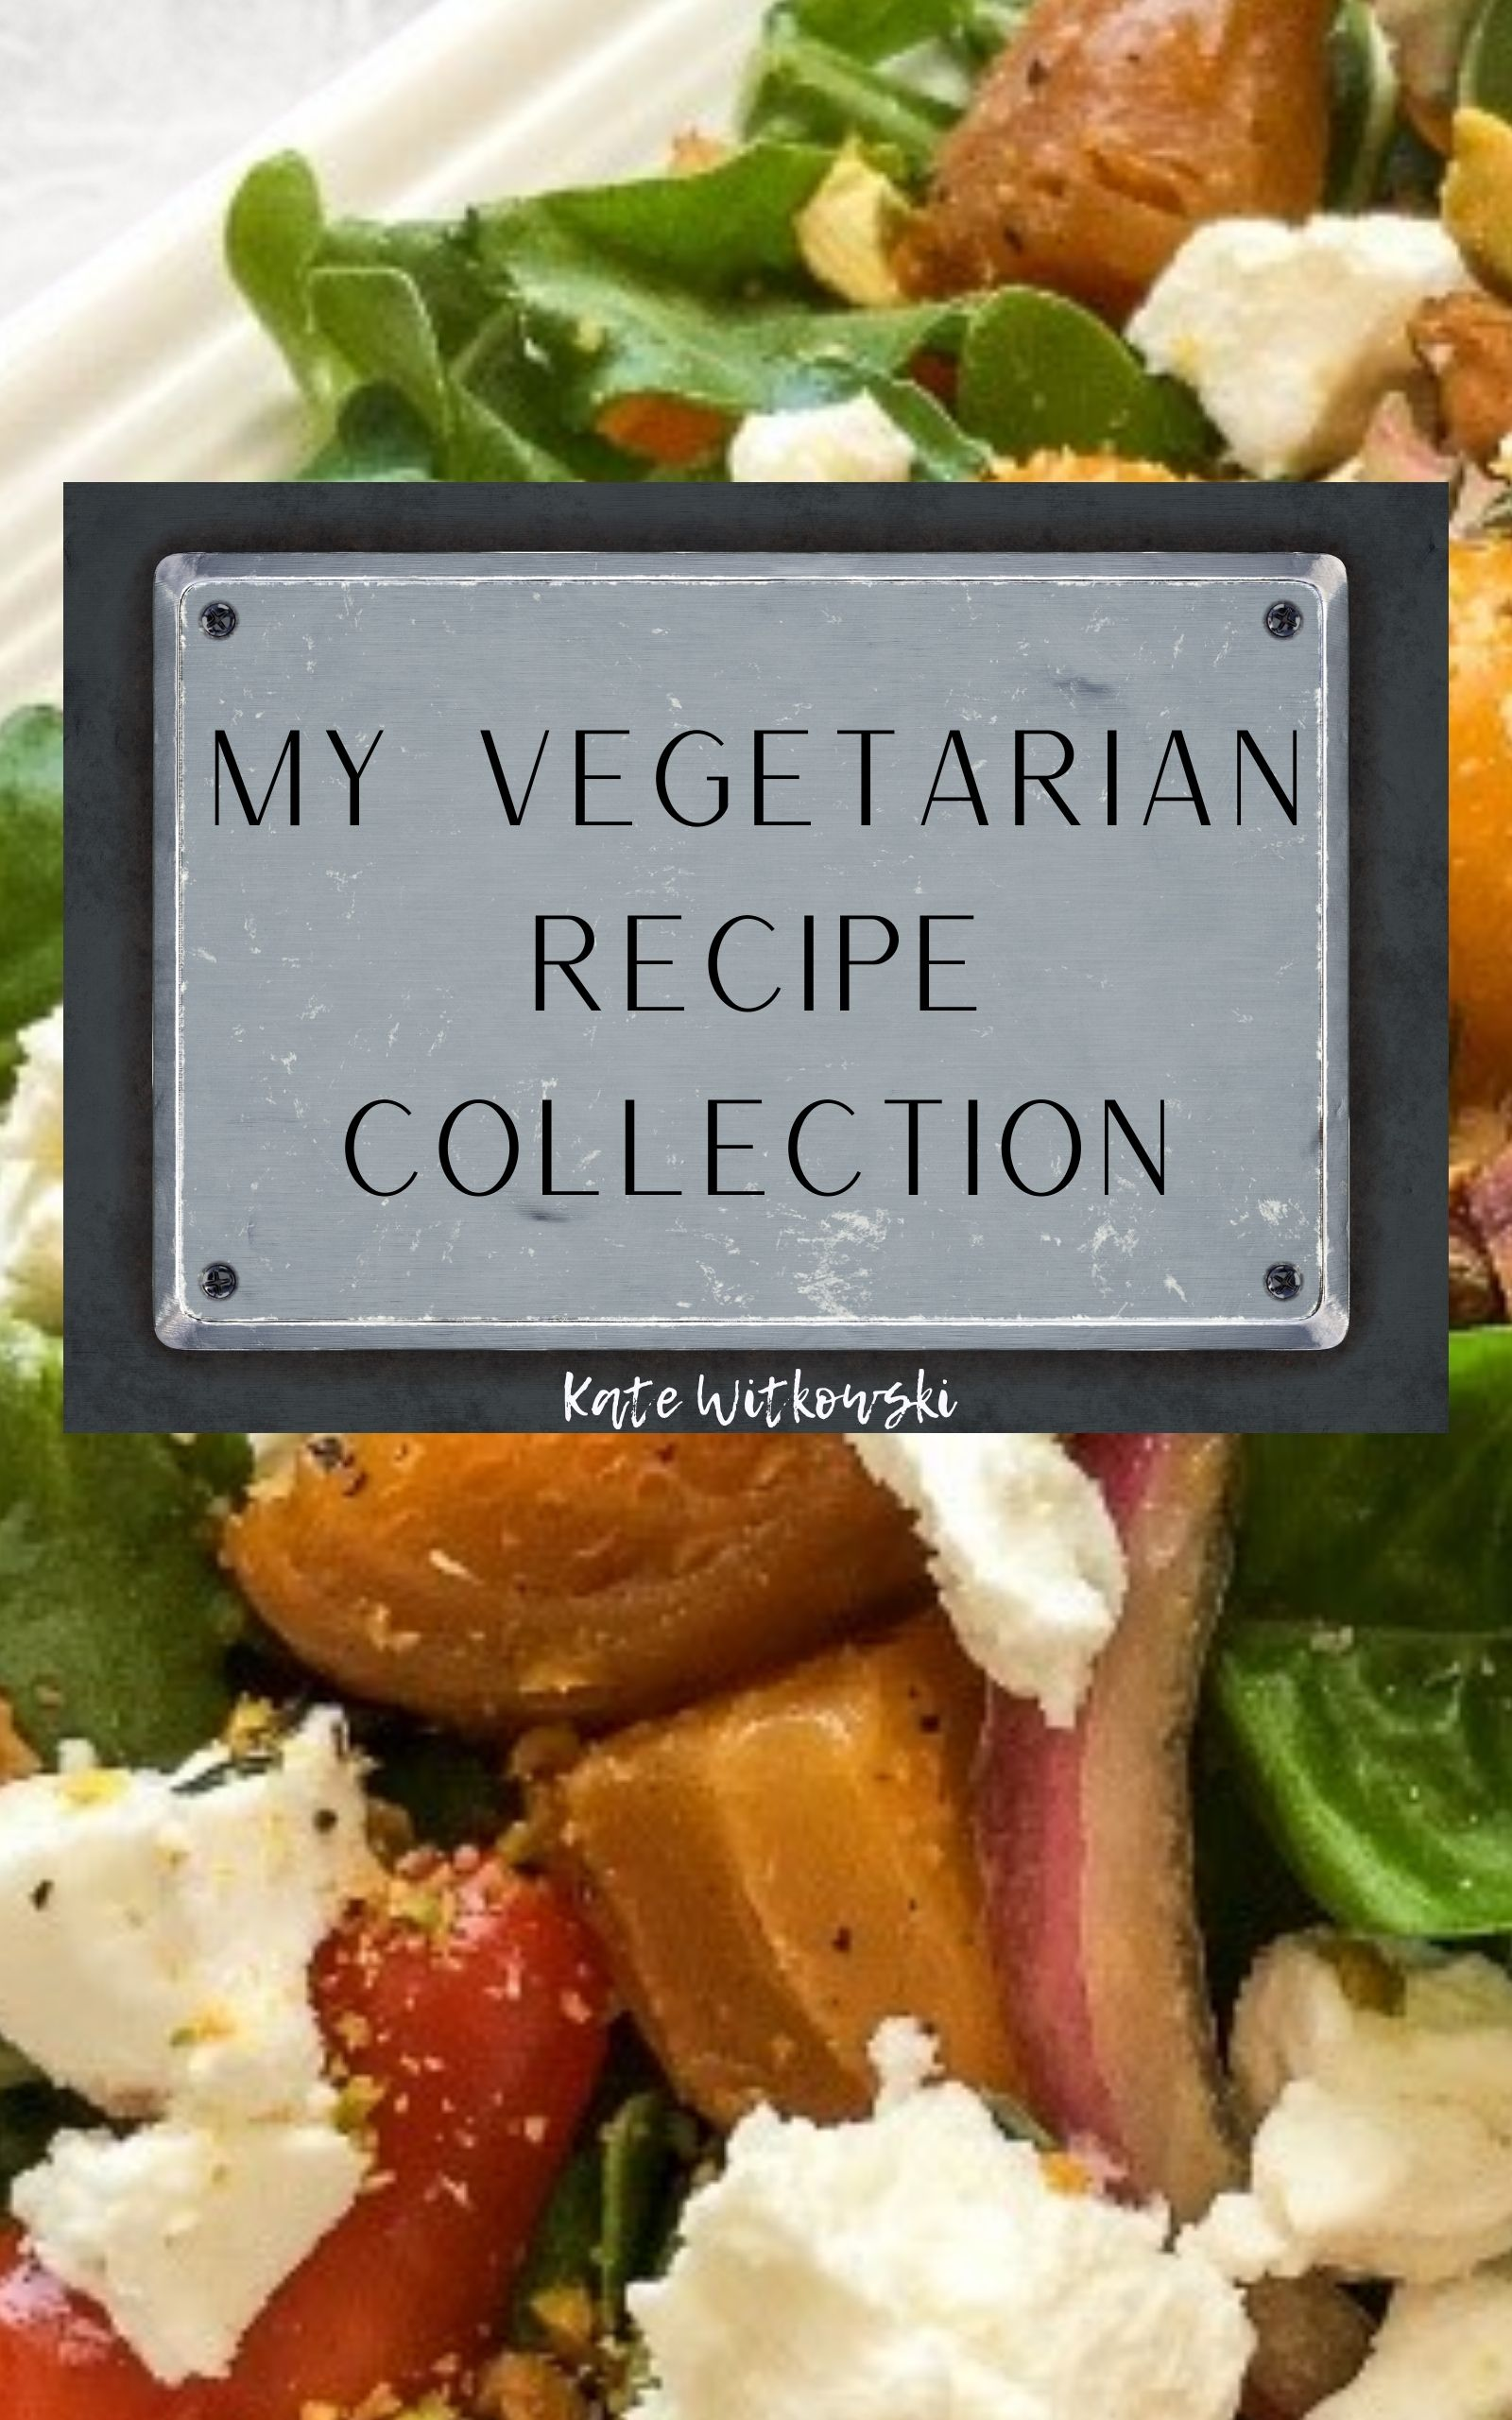 My Vegetarian Recipe Collection